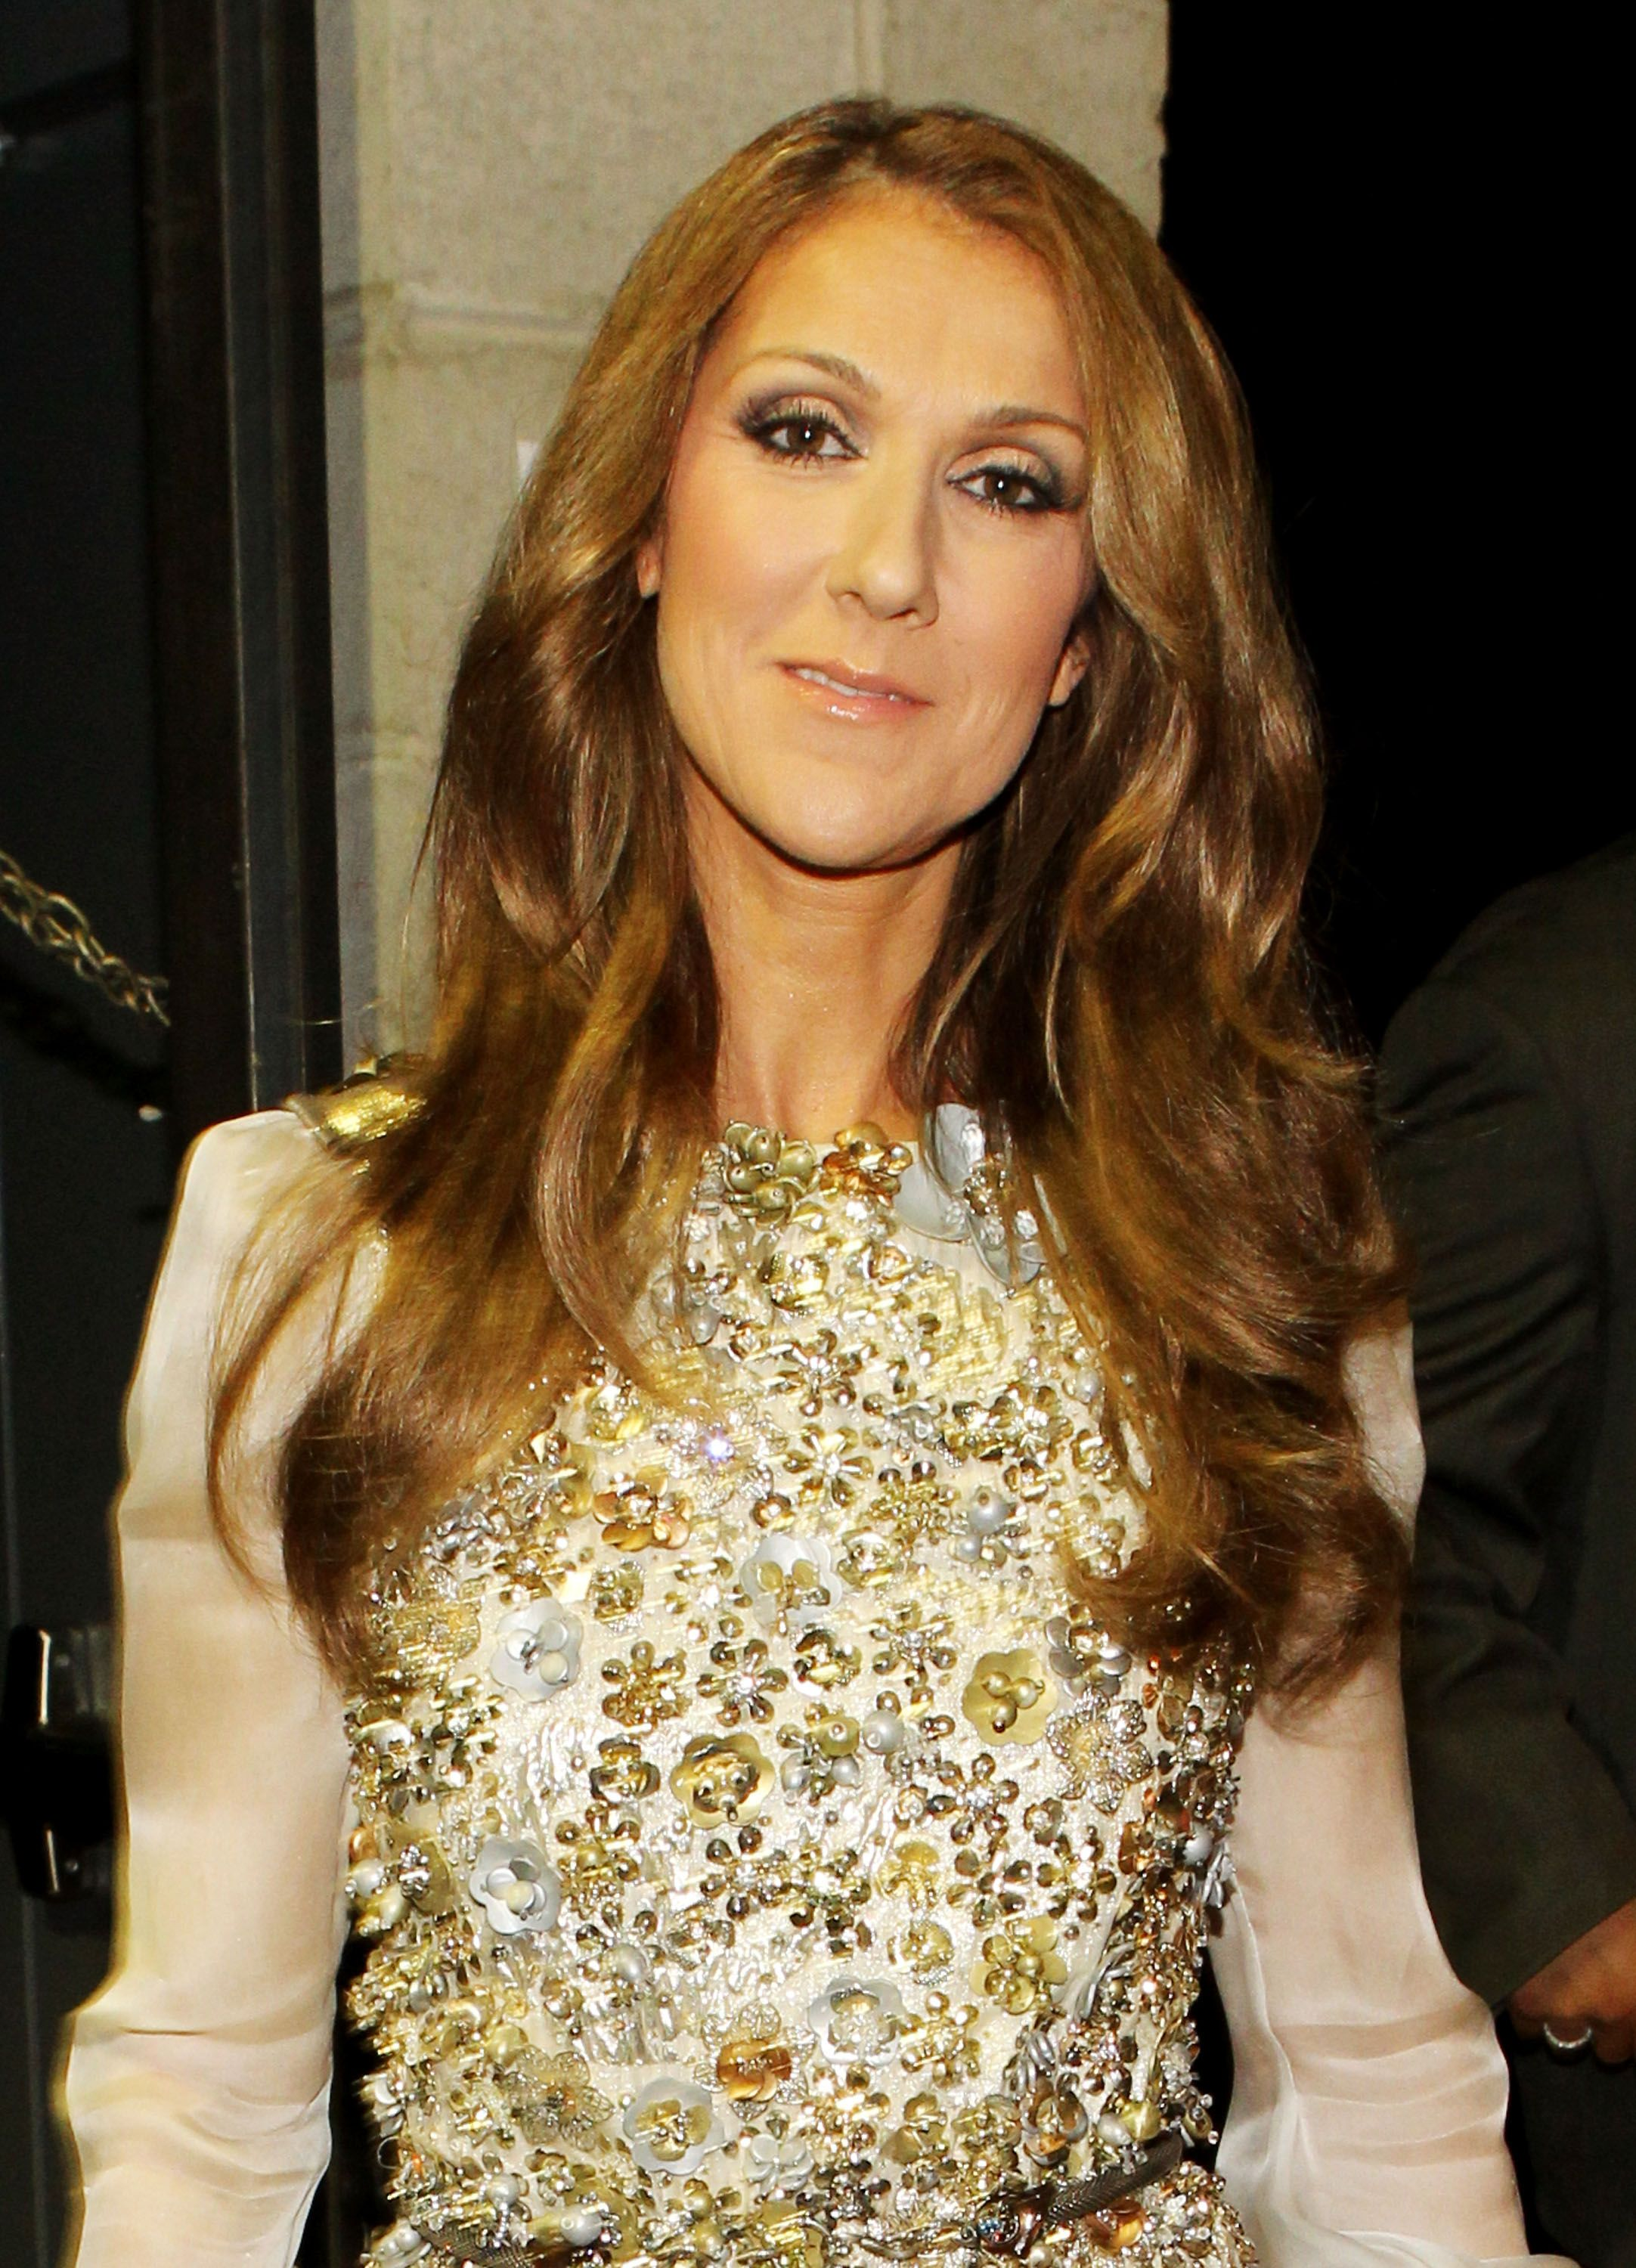 Celine Dion at the 52nd Annual GRAMMY Awards in 2010 in Los Angeles   Source: Getty Images